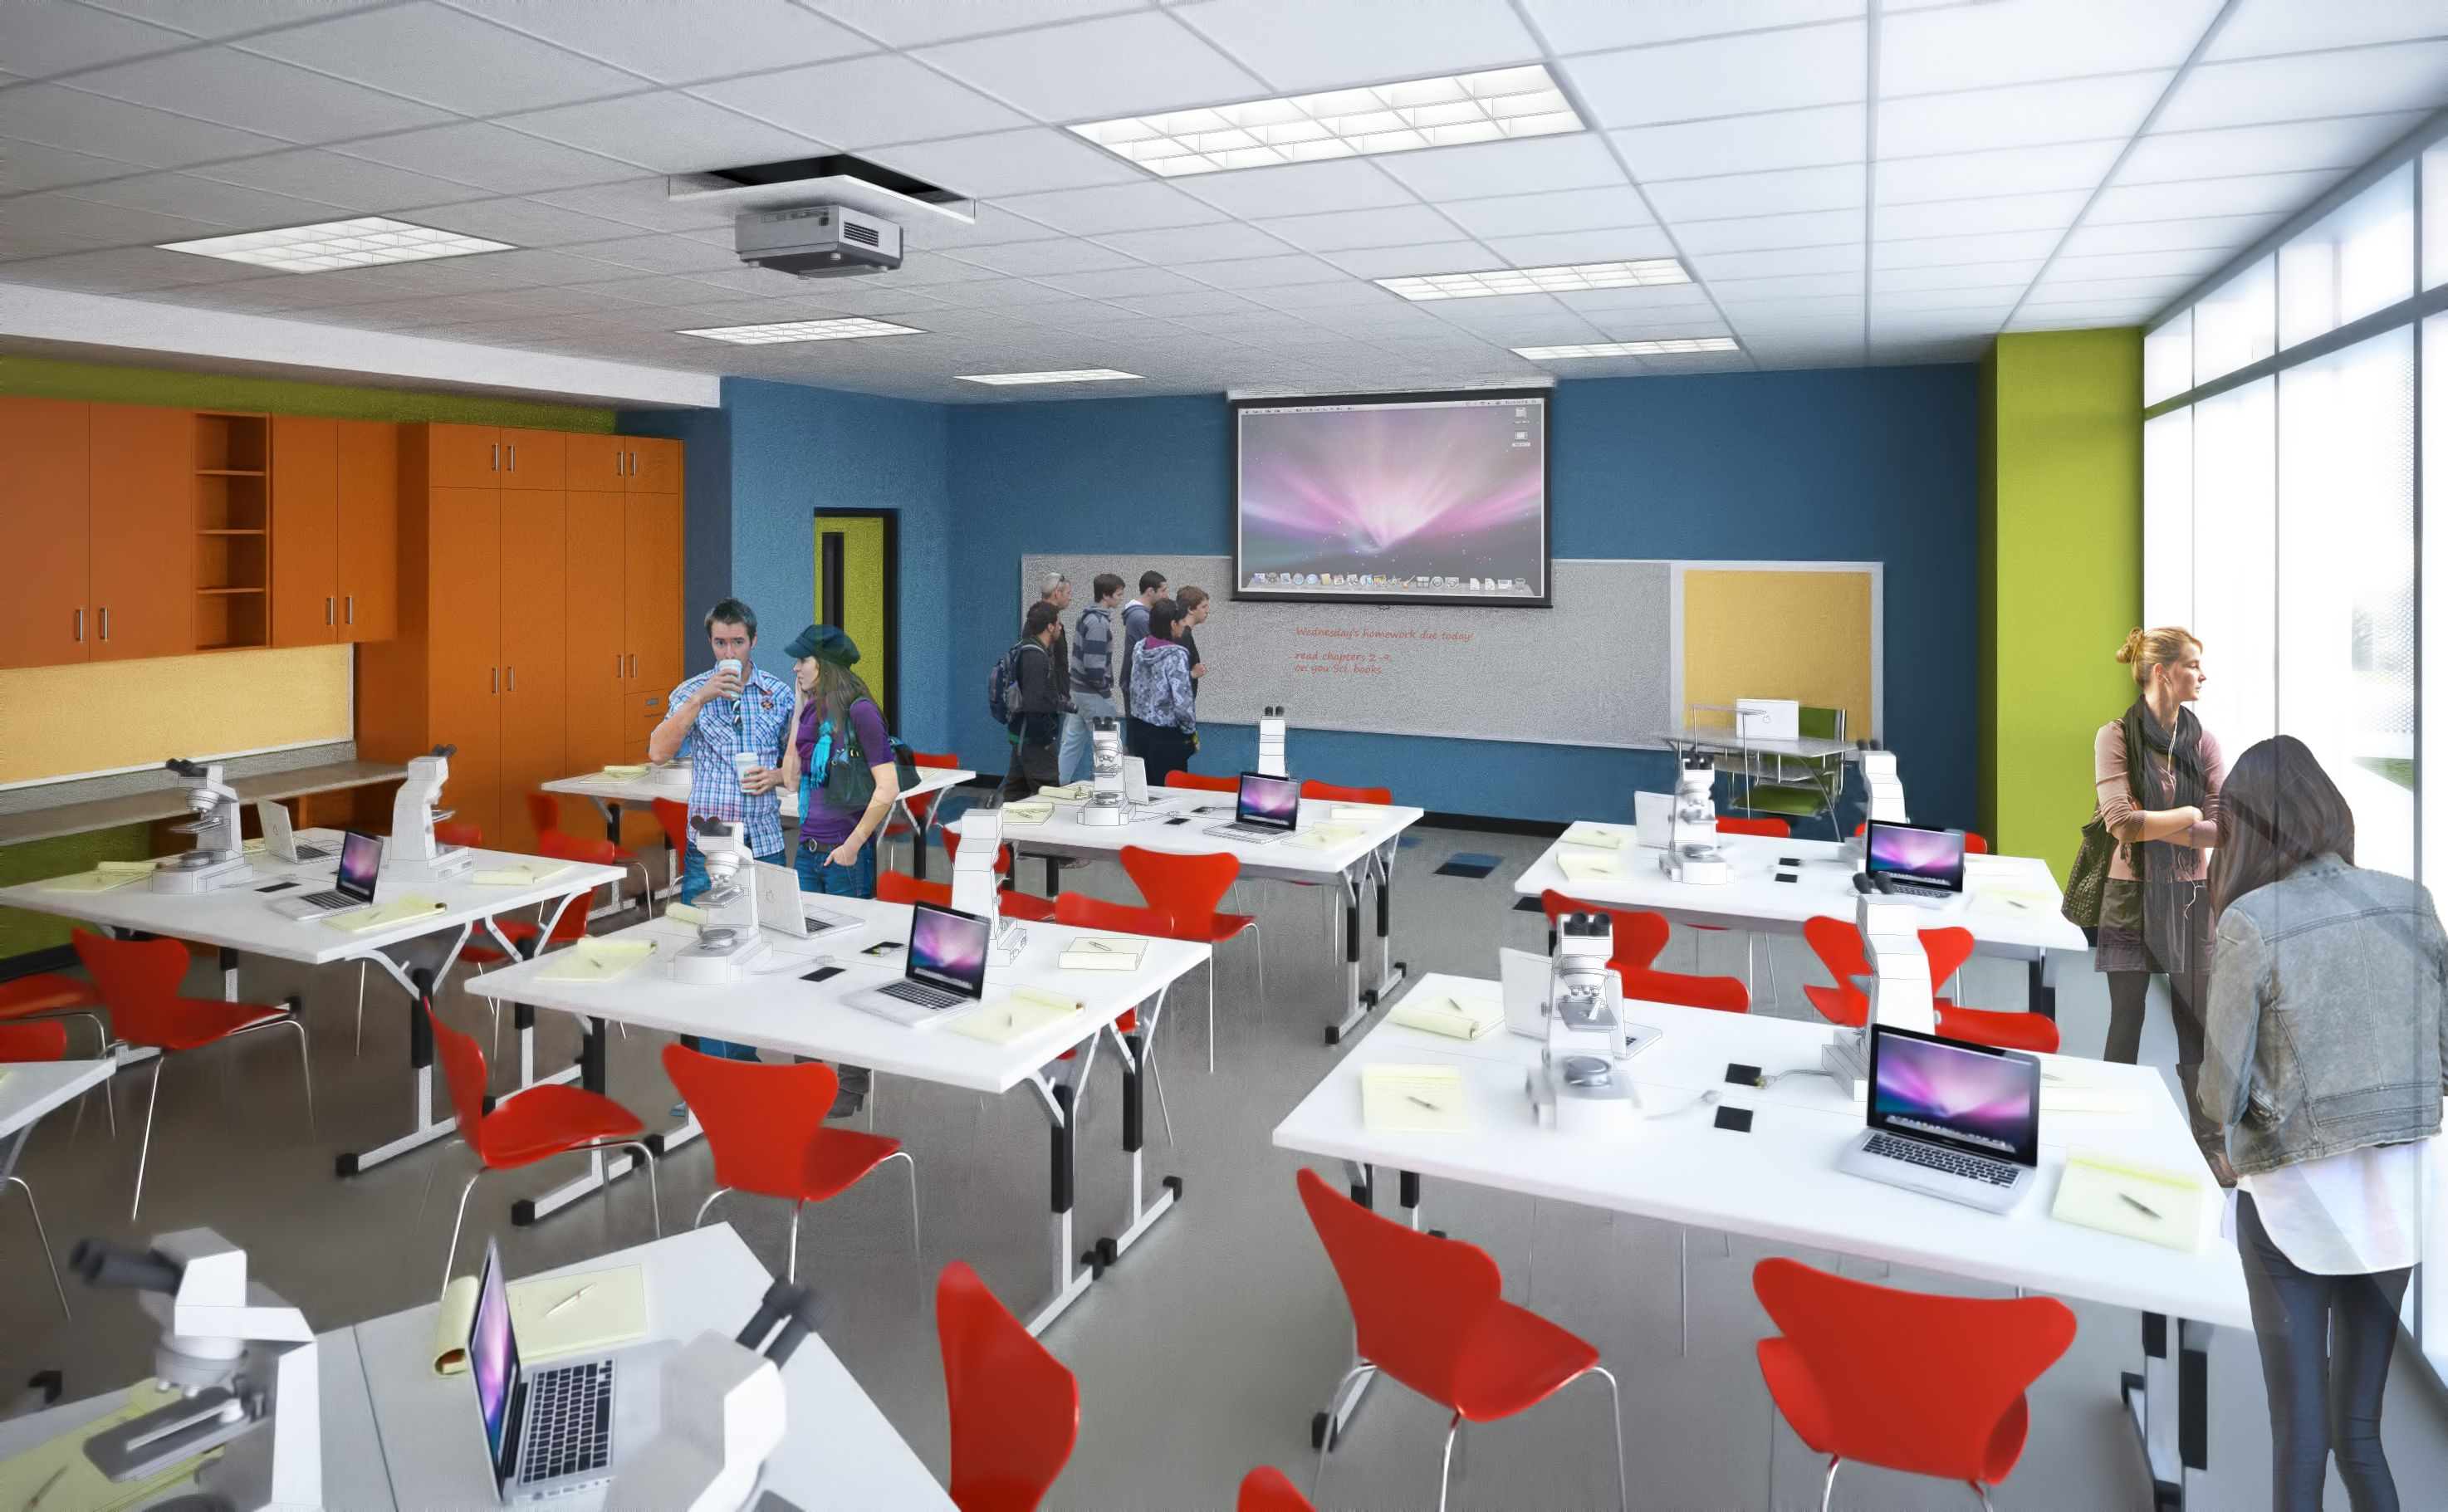 Conventional ideas about classroom design have been adapted for ...